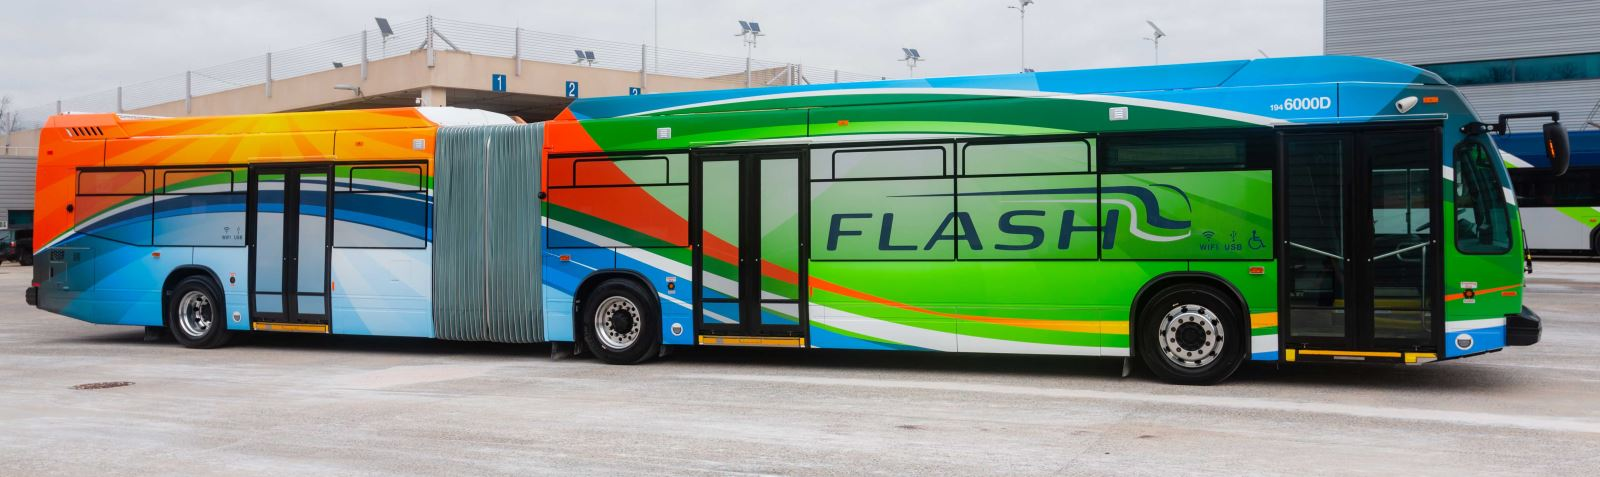 Flash bus